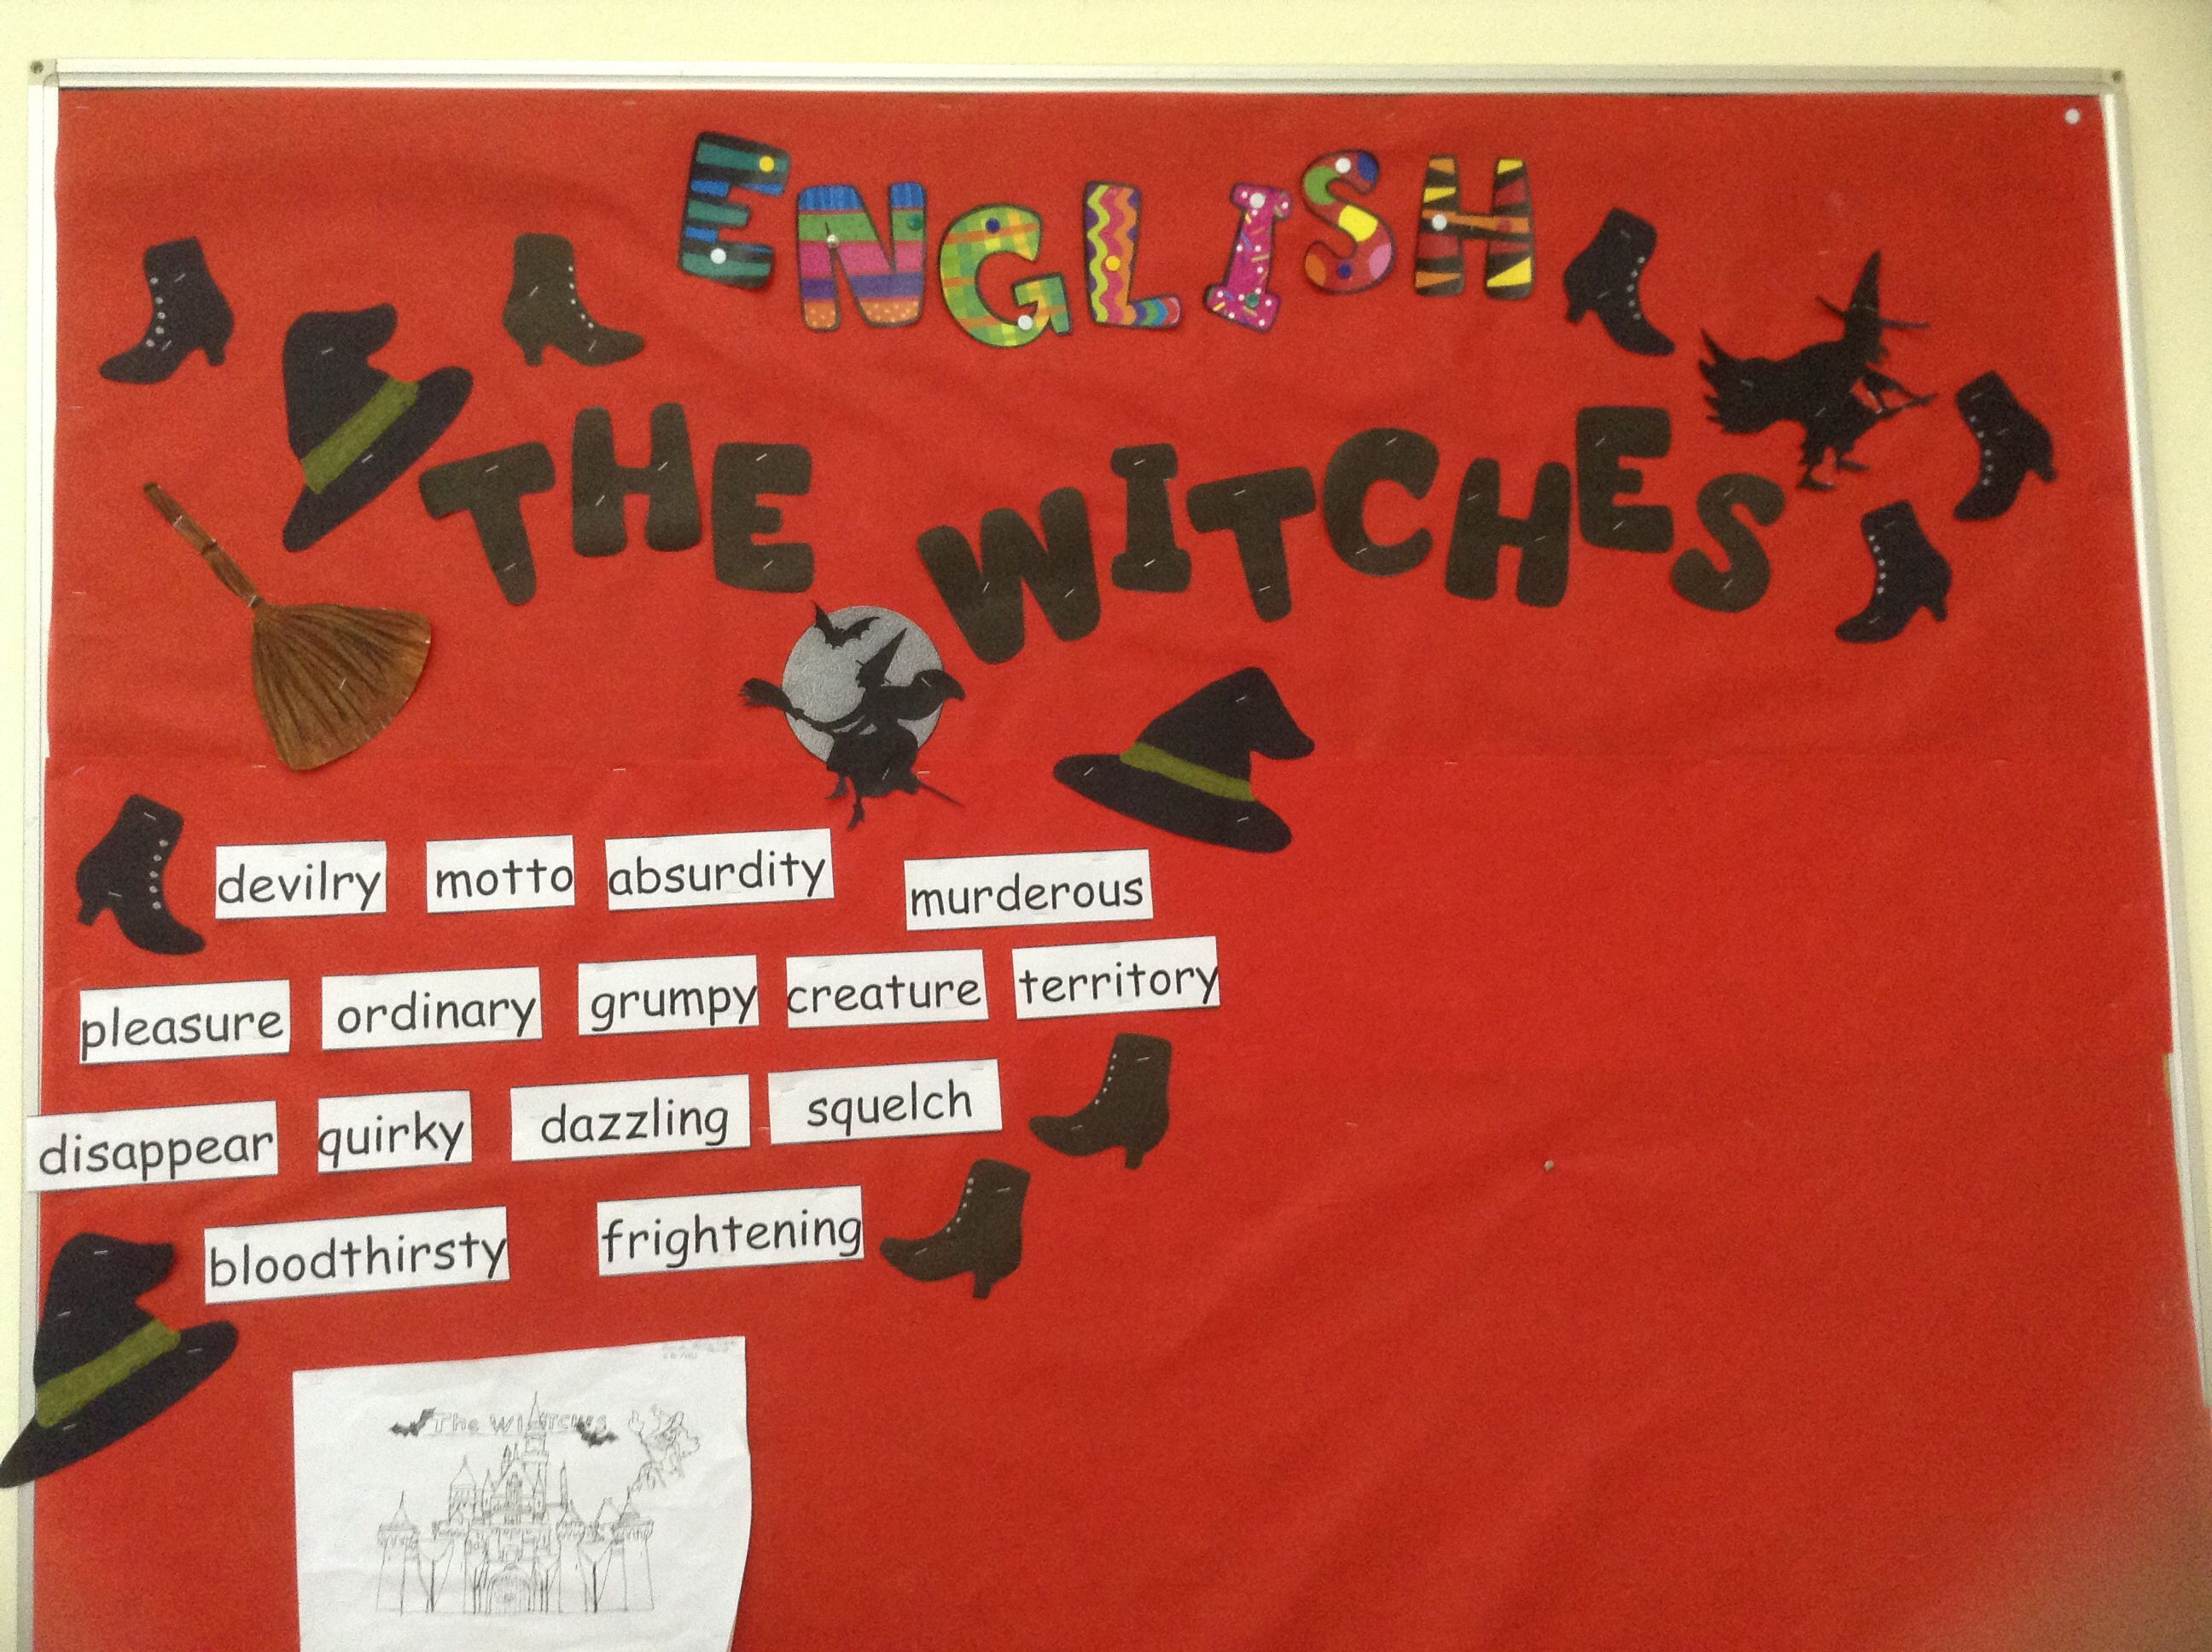 Bulletin Board Idea For The Witches Written By Roald Dahl